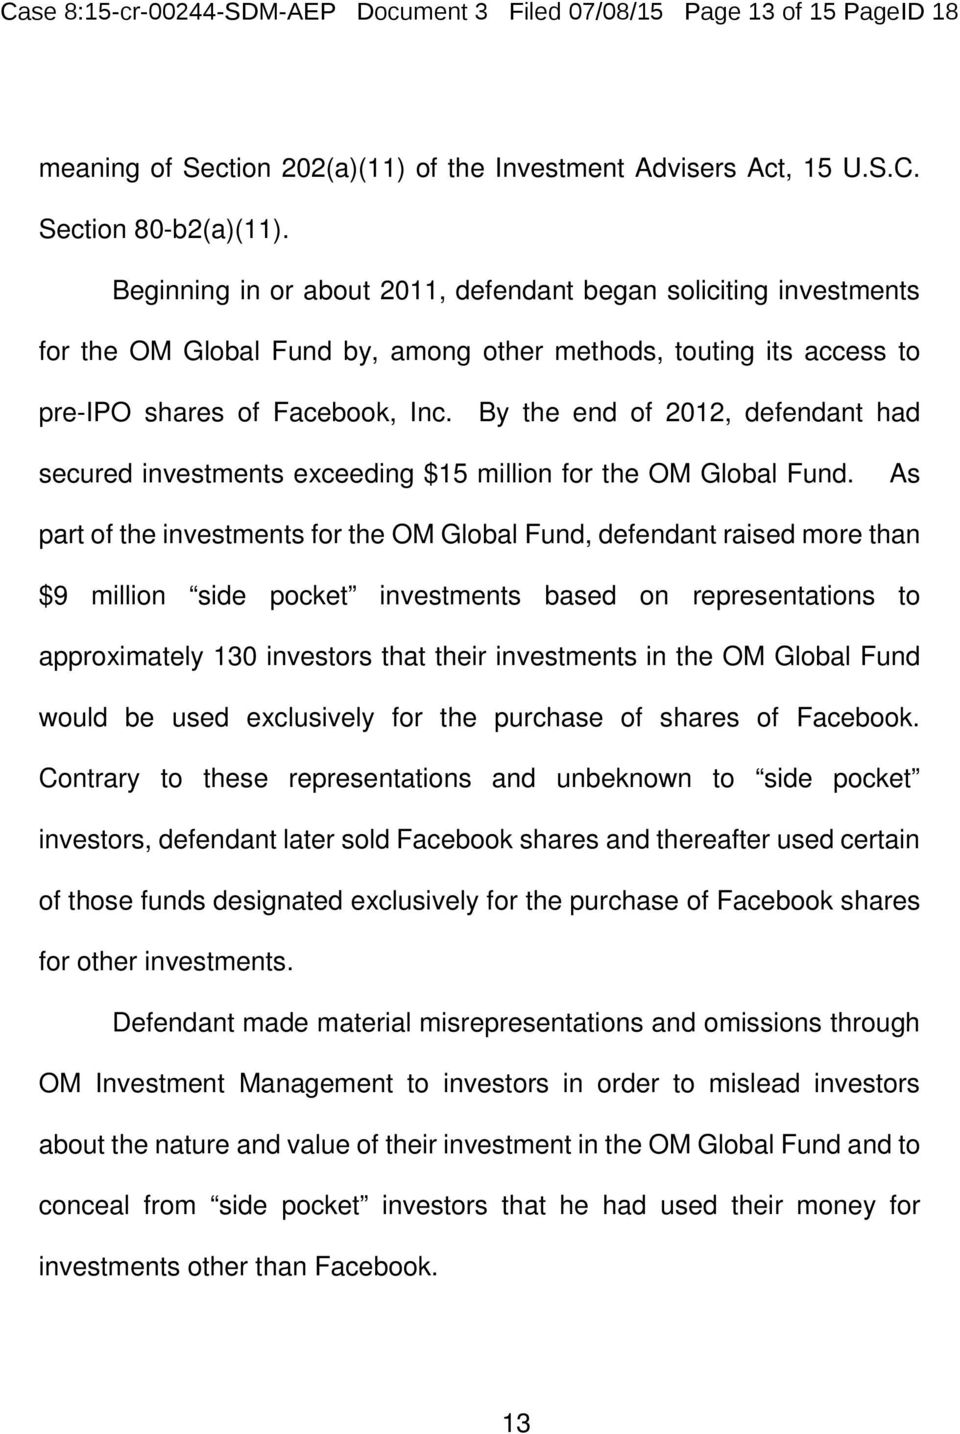 By the end of 2012, defendant had secured investments exceeding $15 million for the OM Global Fund.